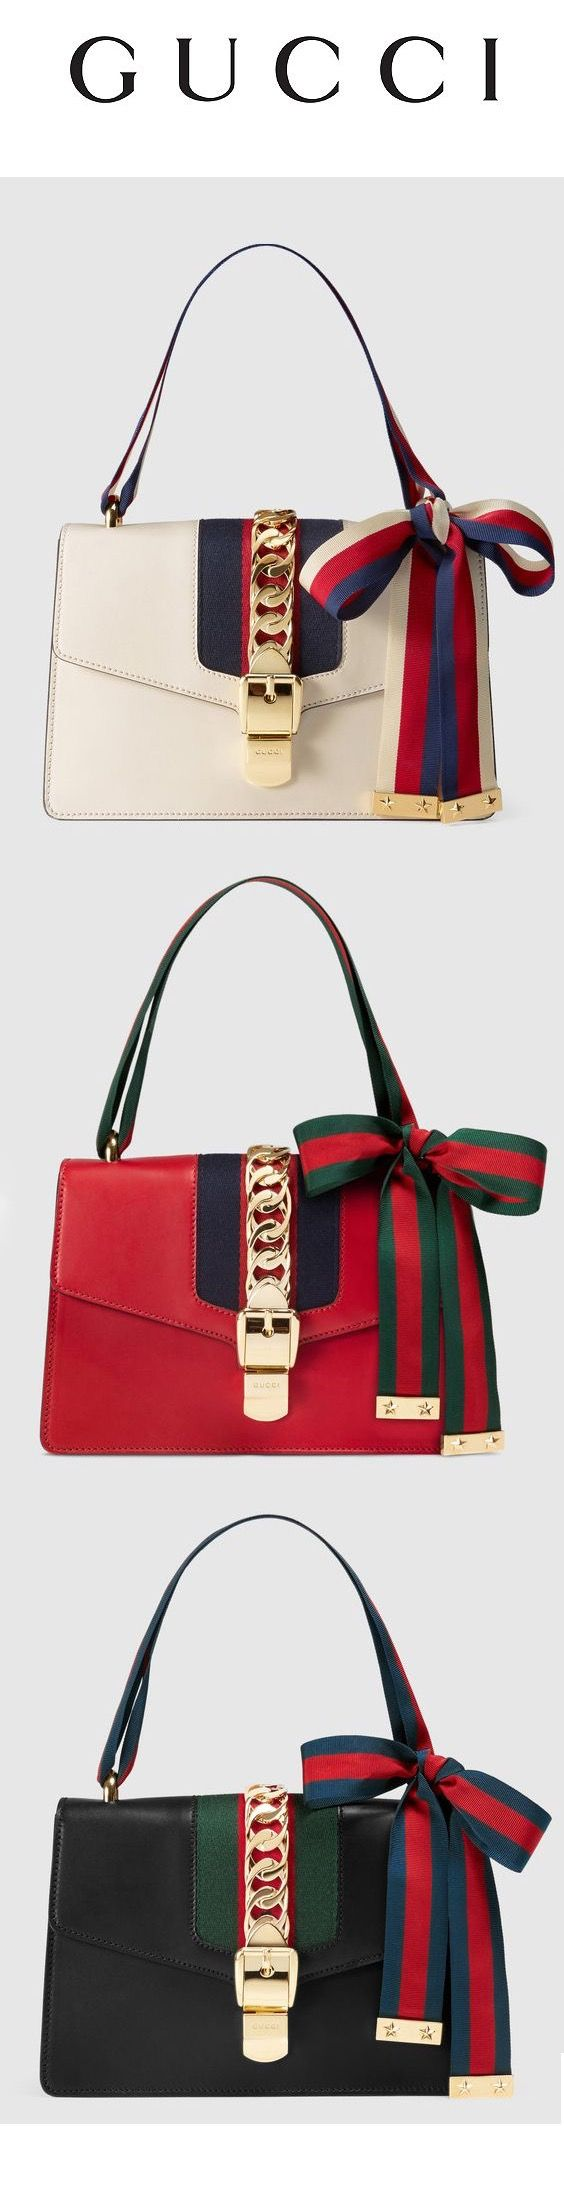 Gucci New Collection